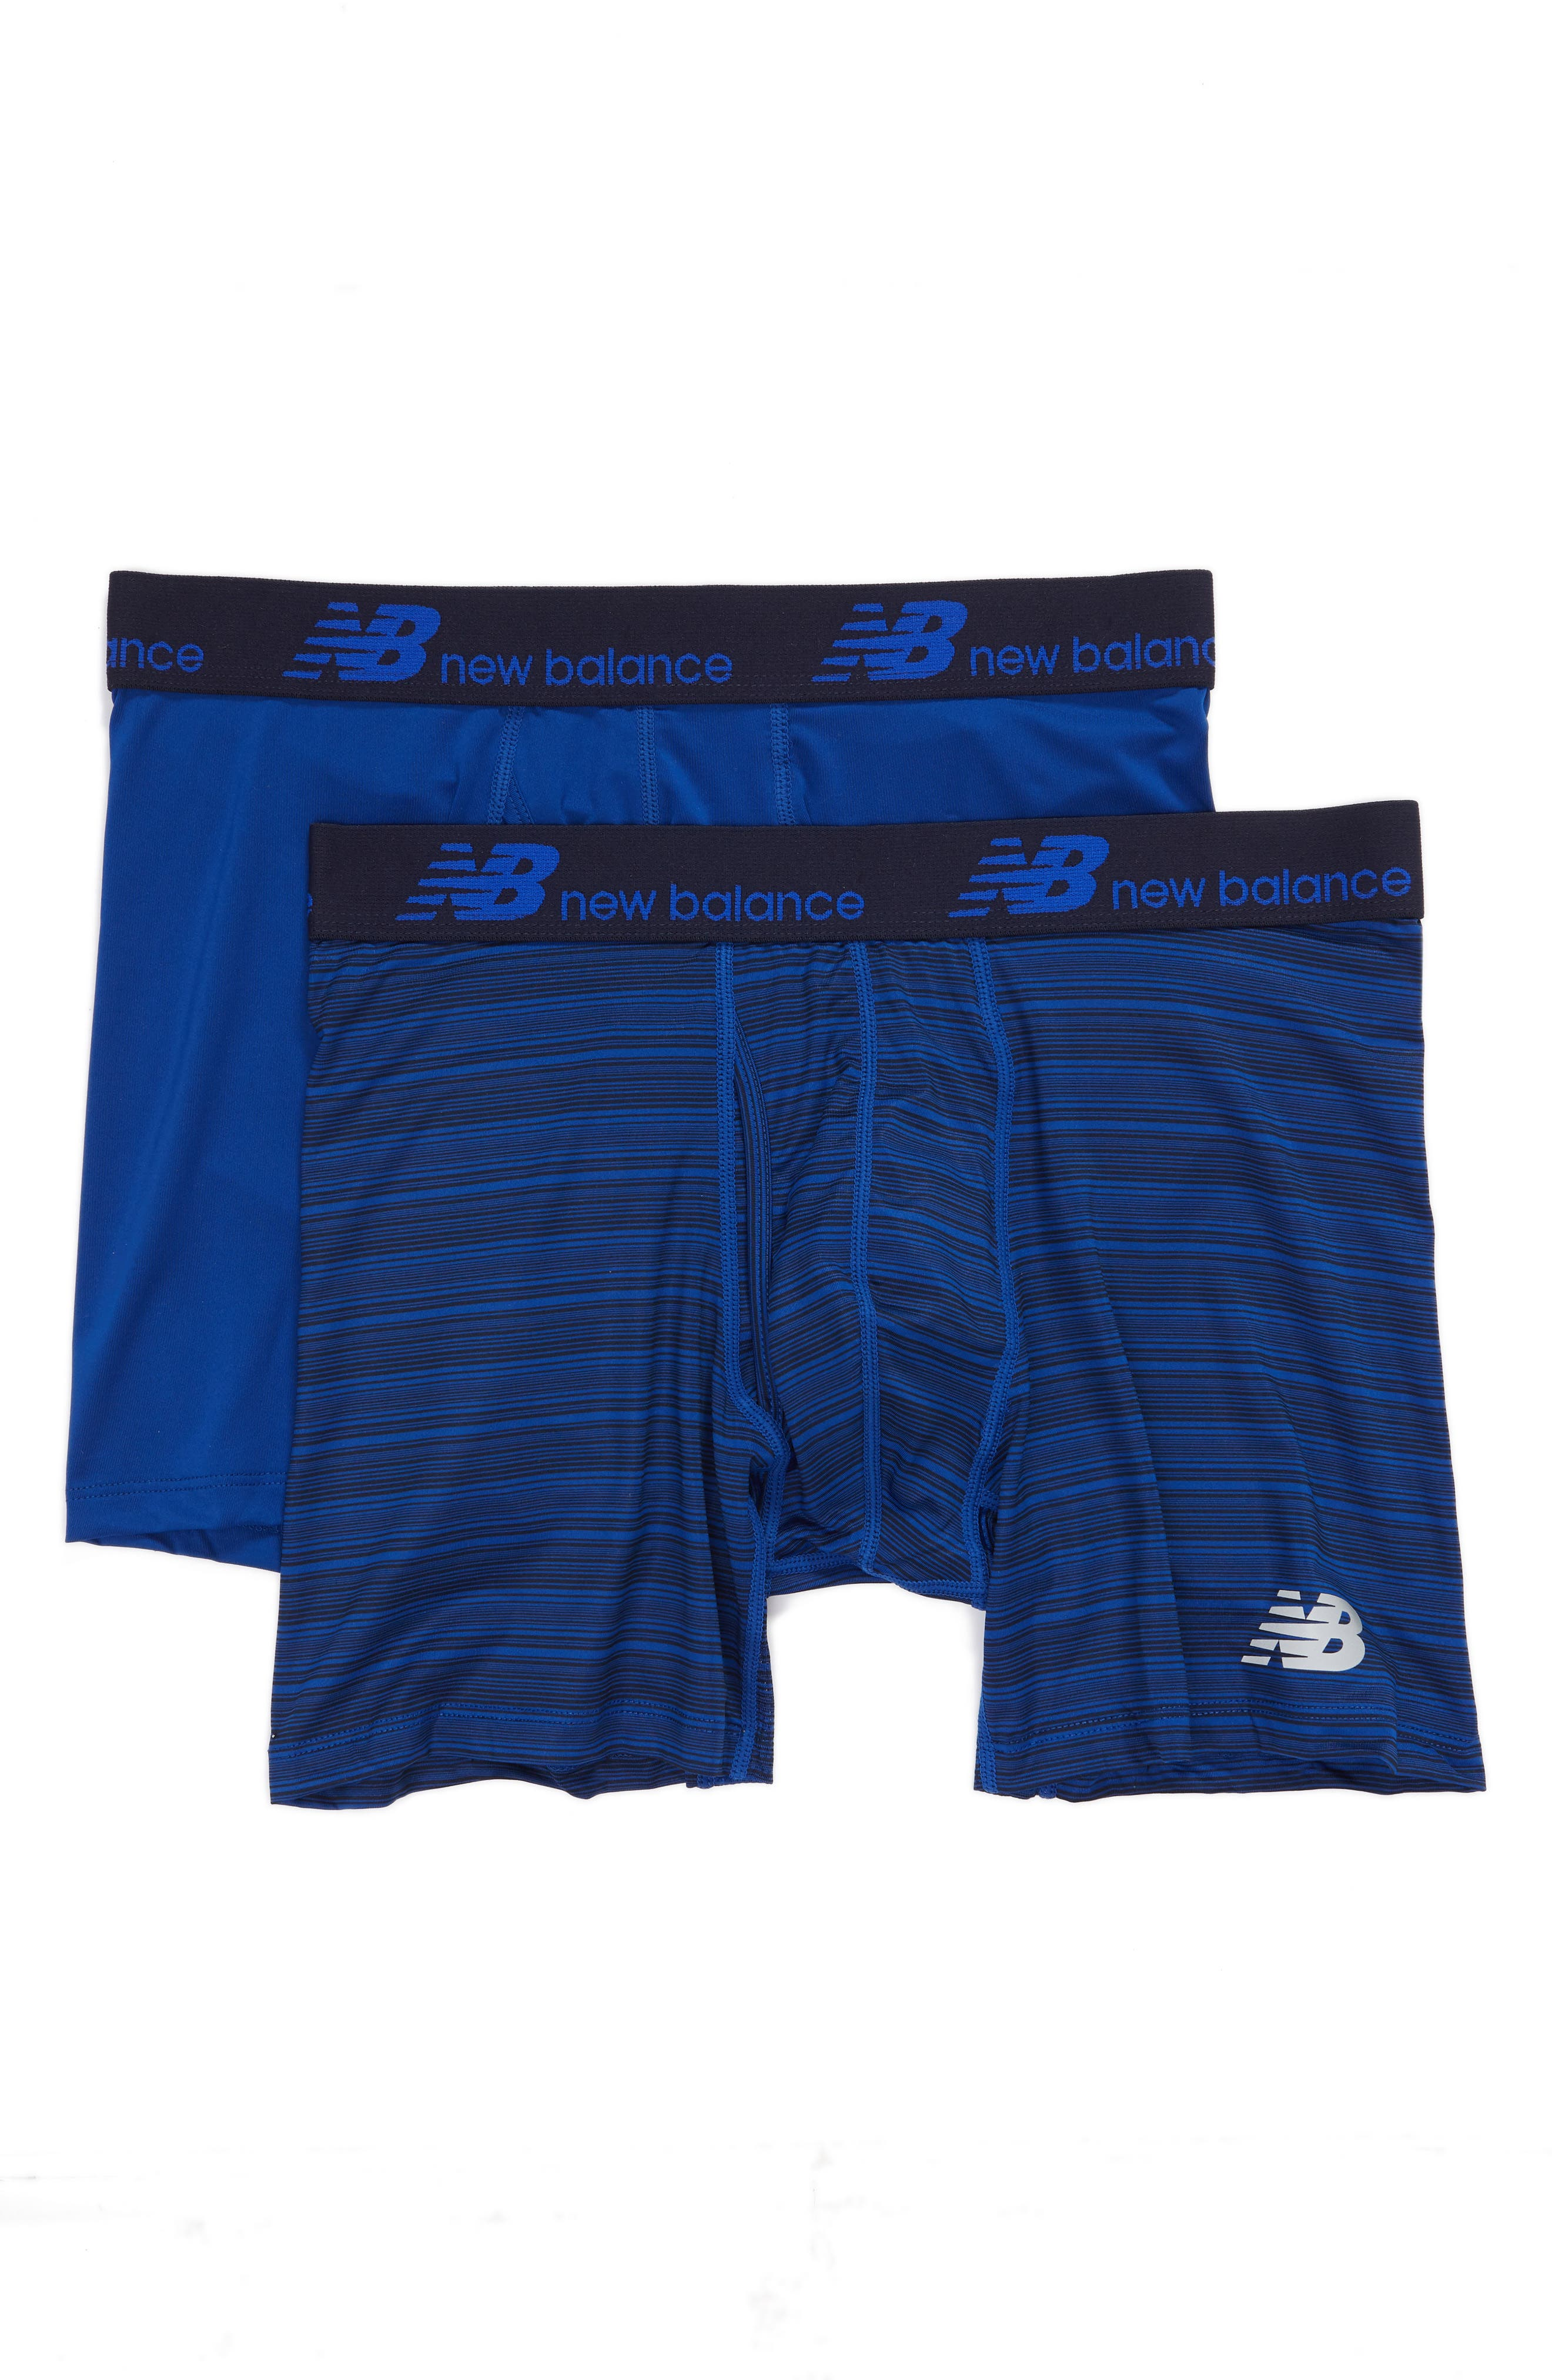 New Balance 2-Pack Boxer Briefs, Blue